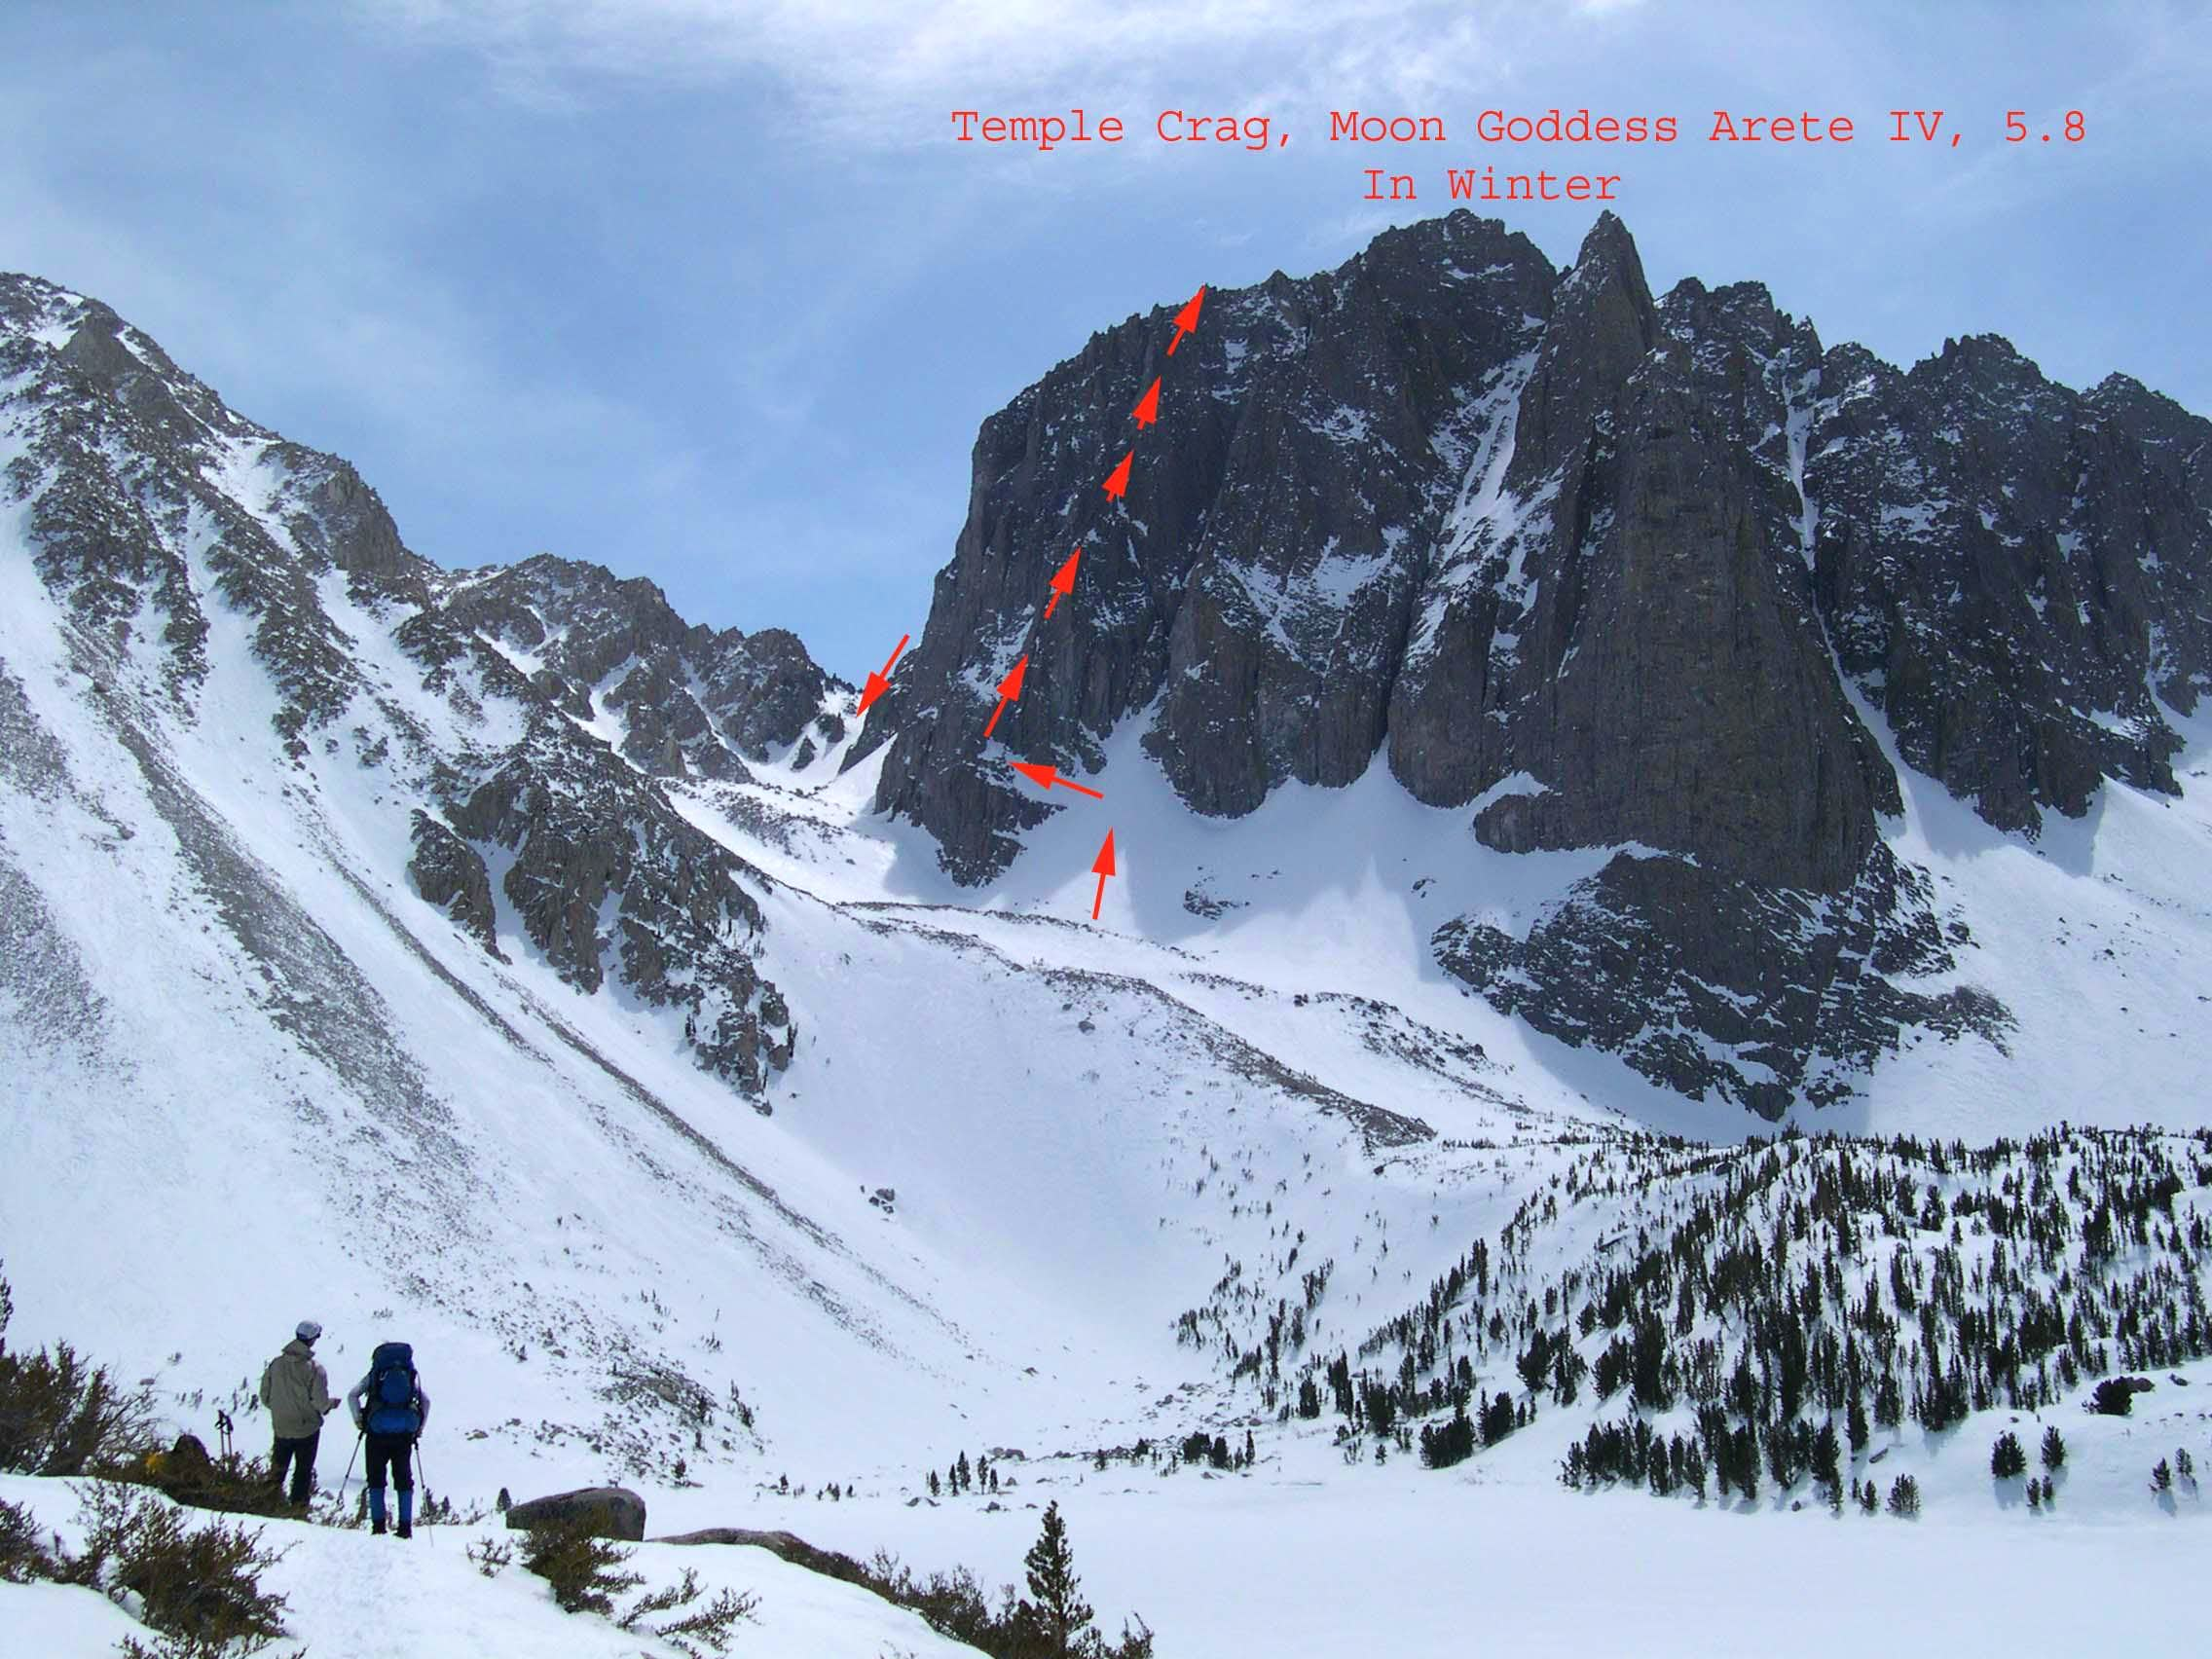 TEMPLE CRAG, Moon Goddess Arete, In Winter